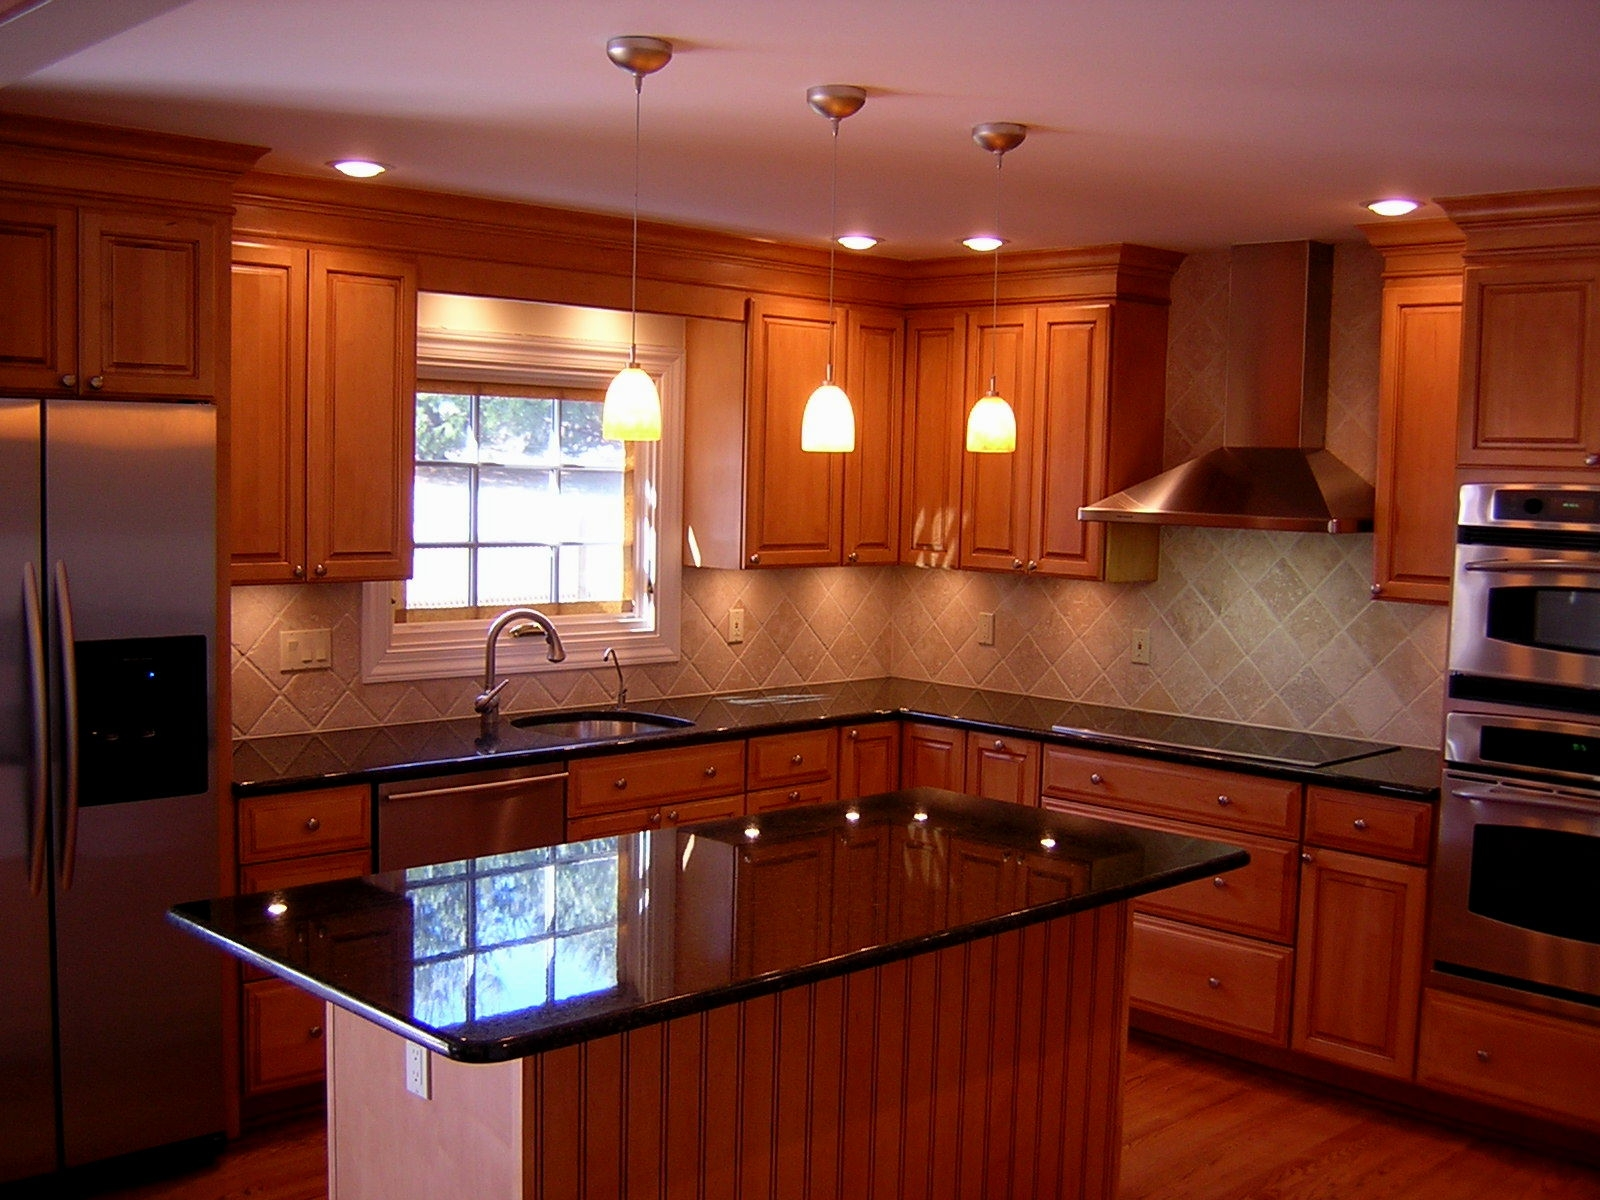 Cherry Wood Kitchen Decorating Ideas